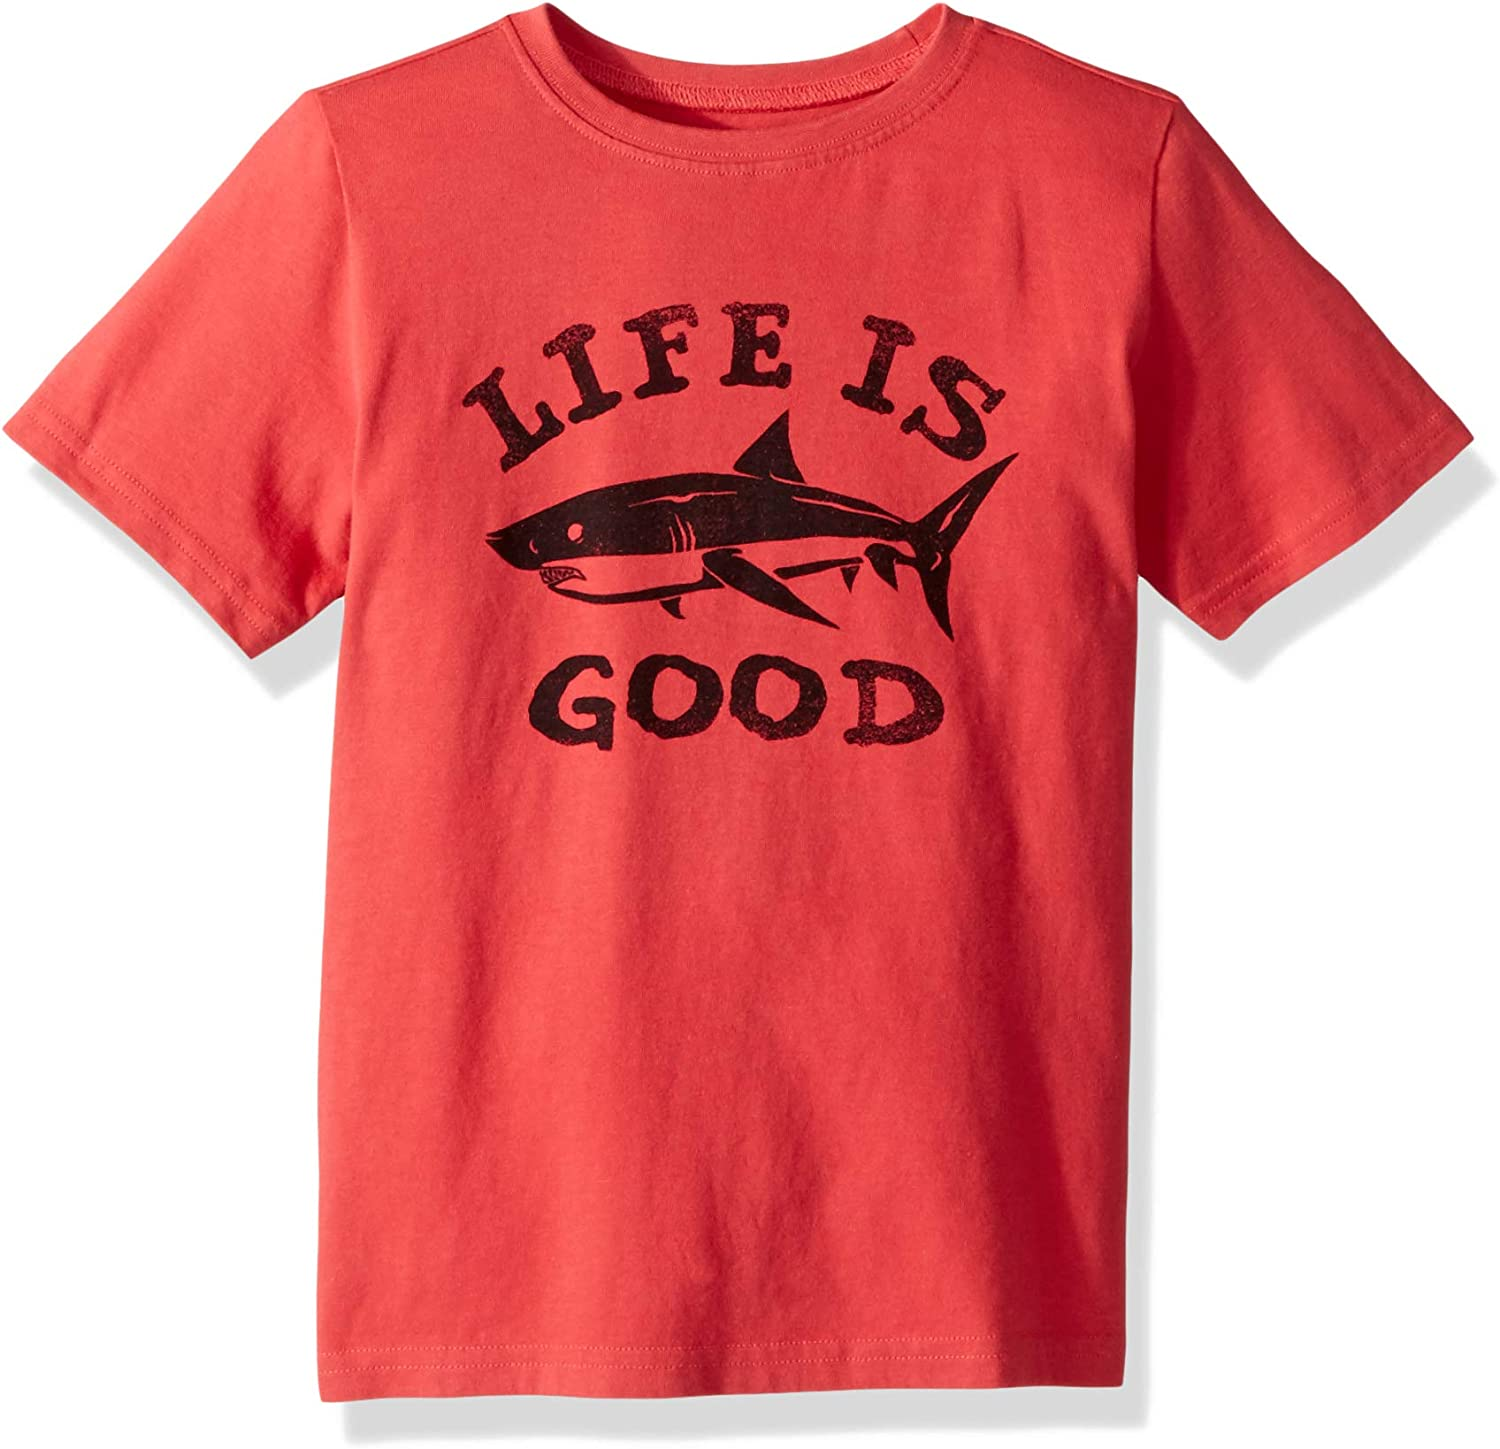 Life is Good Boys Crusher Tee